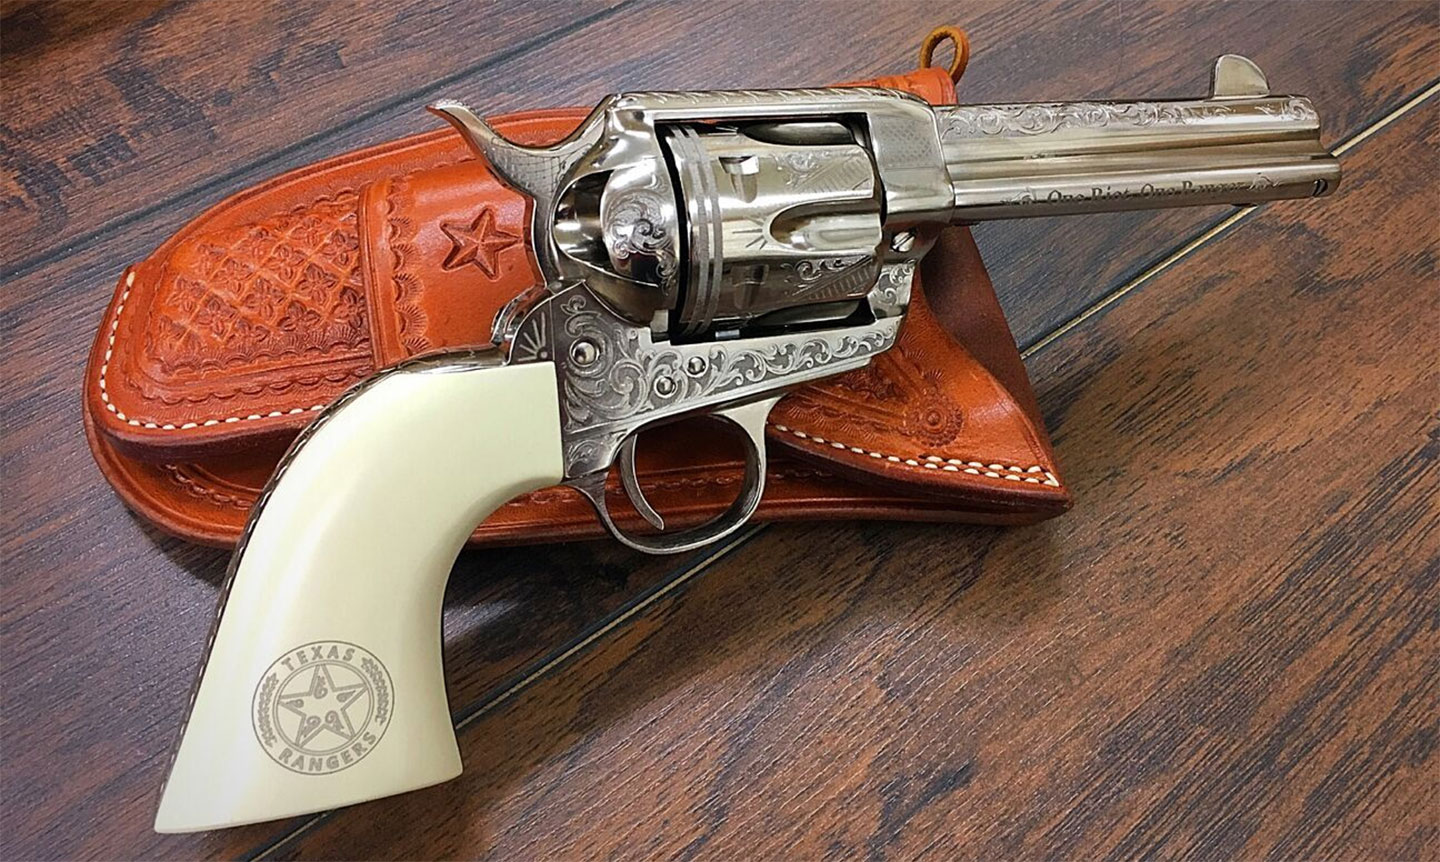 Chuck-Norris-Awarded-Special-Frontier-Revolver-1